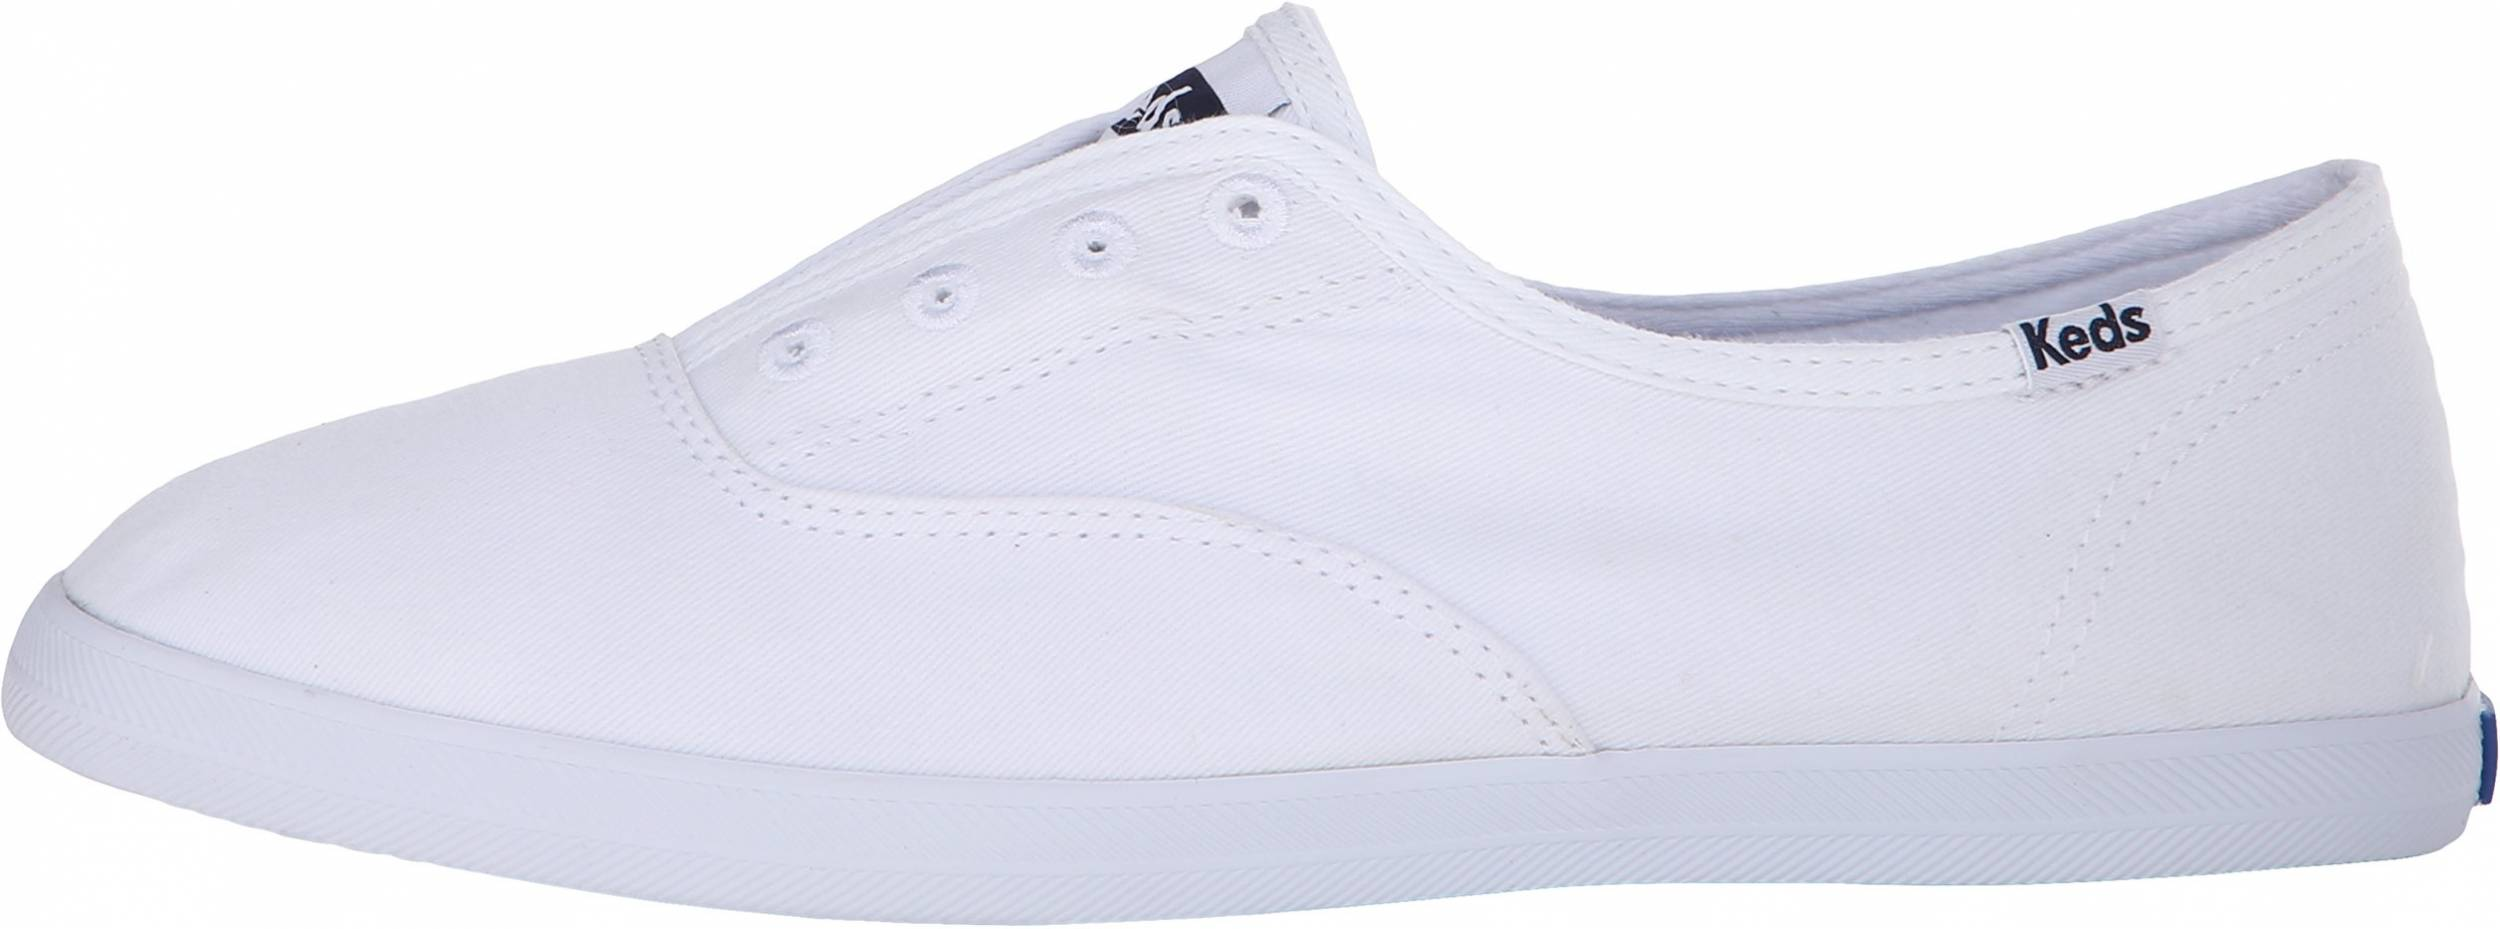 Only $29 + Review of Keds Chillax